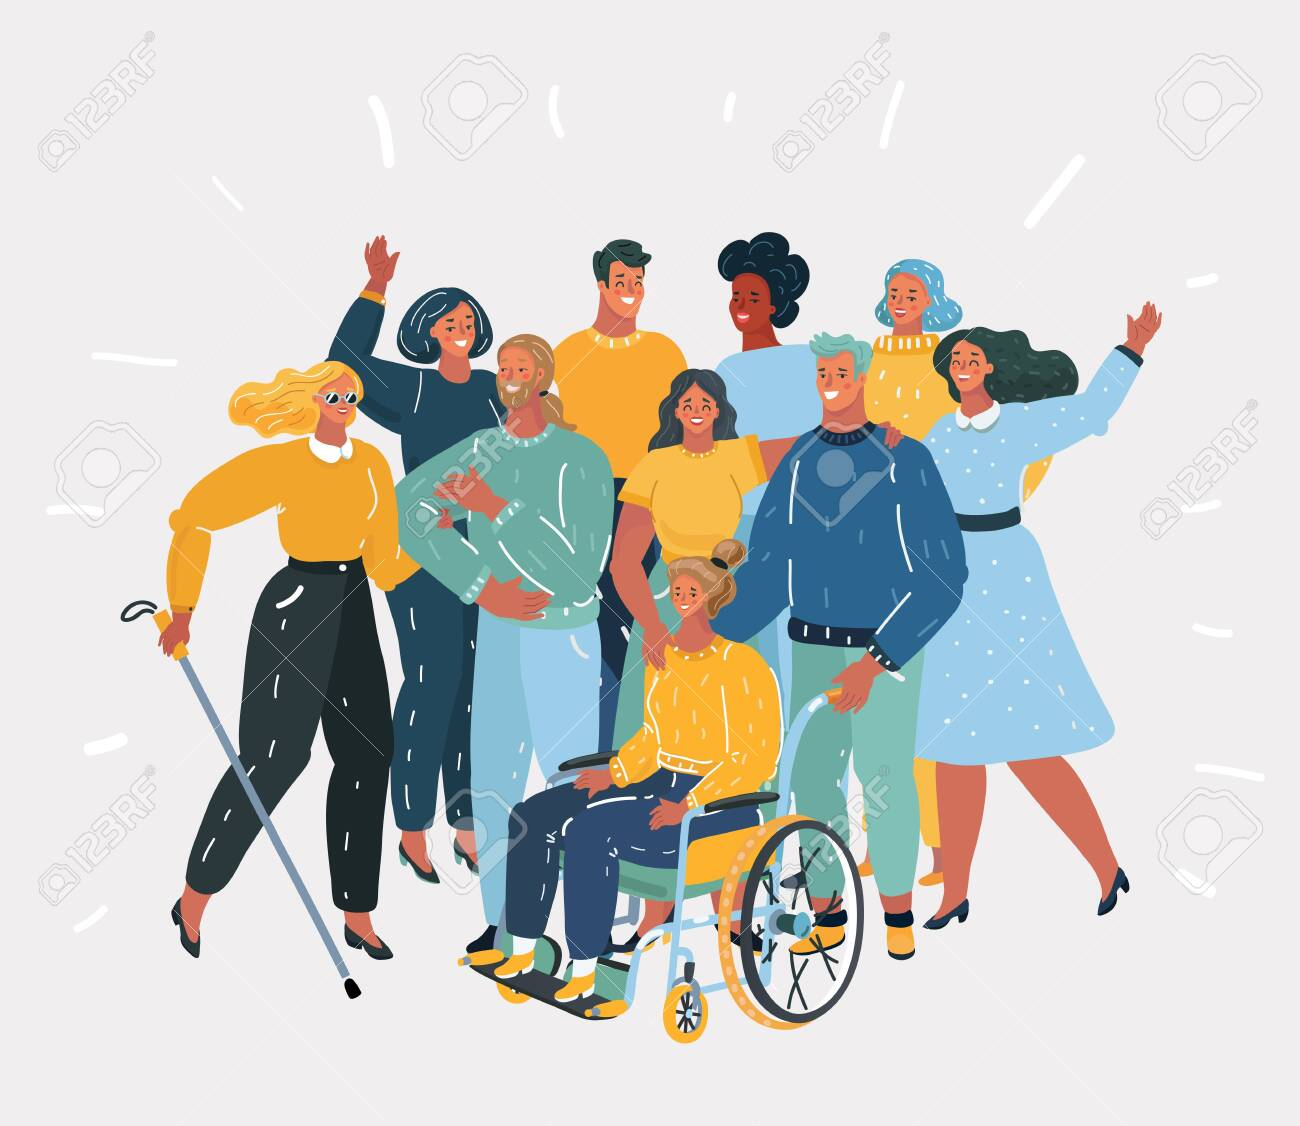 Vector cartoon illustration of Disabled people, handicapped characters volunteers, diverse students, disabled girl in wheelchair, blind woman. Friends together. Group of people on white background. - 123531542